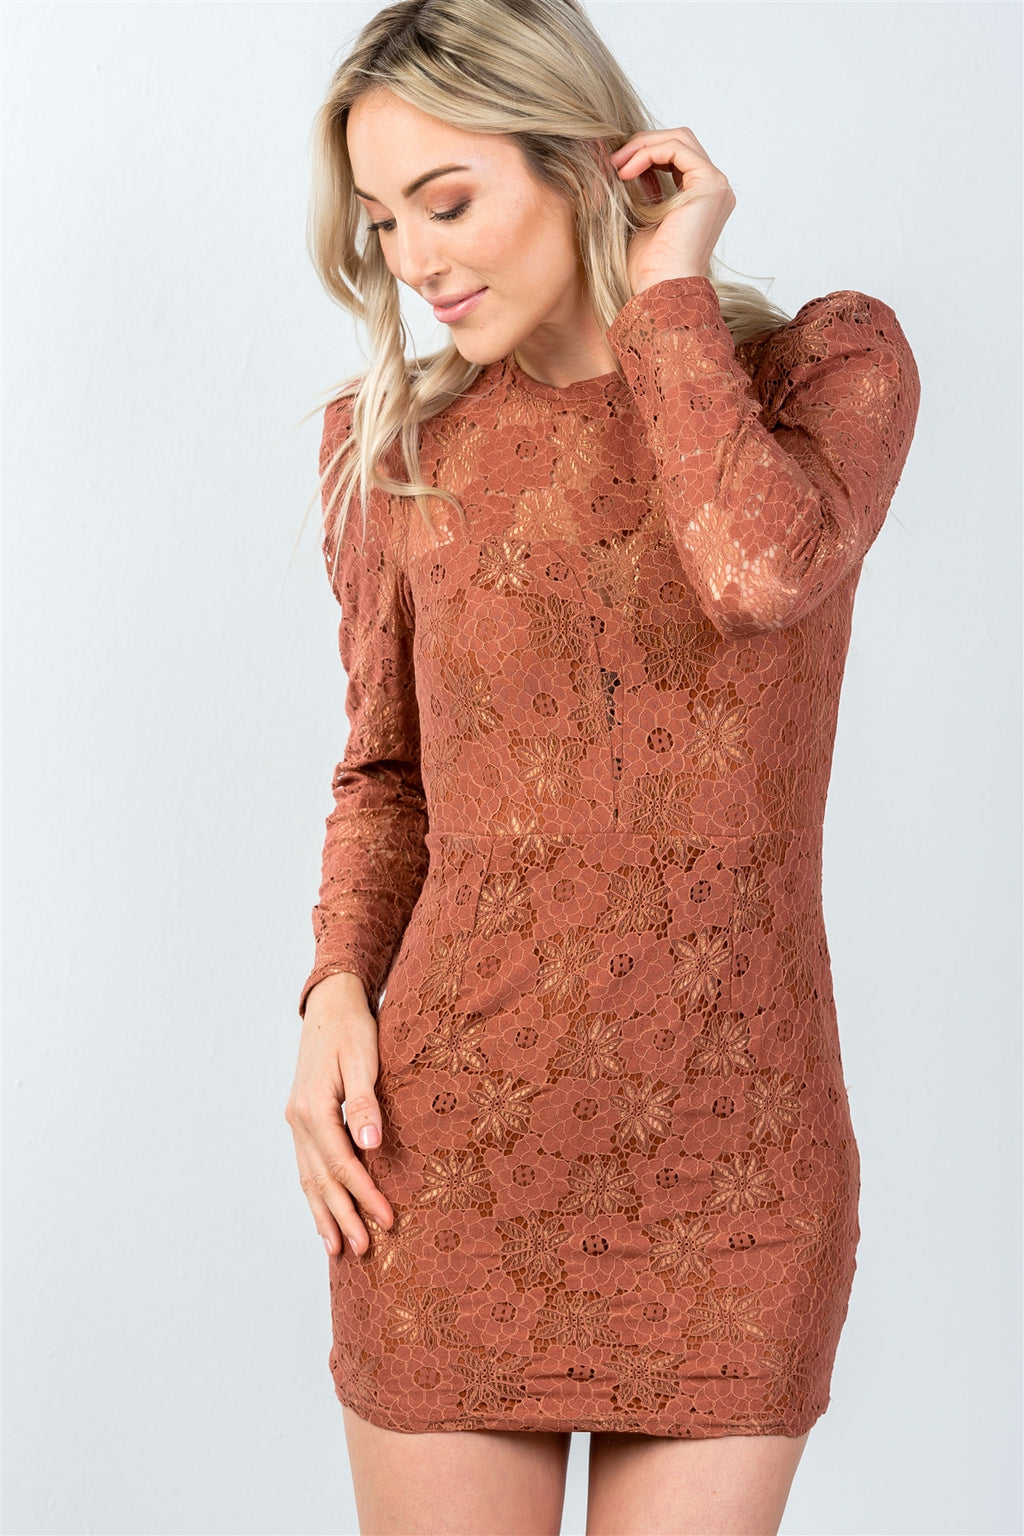 Ladies fashion toffee all floral lace gathered shoulder mini dress